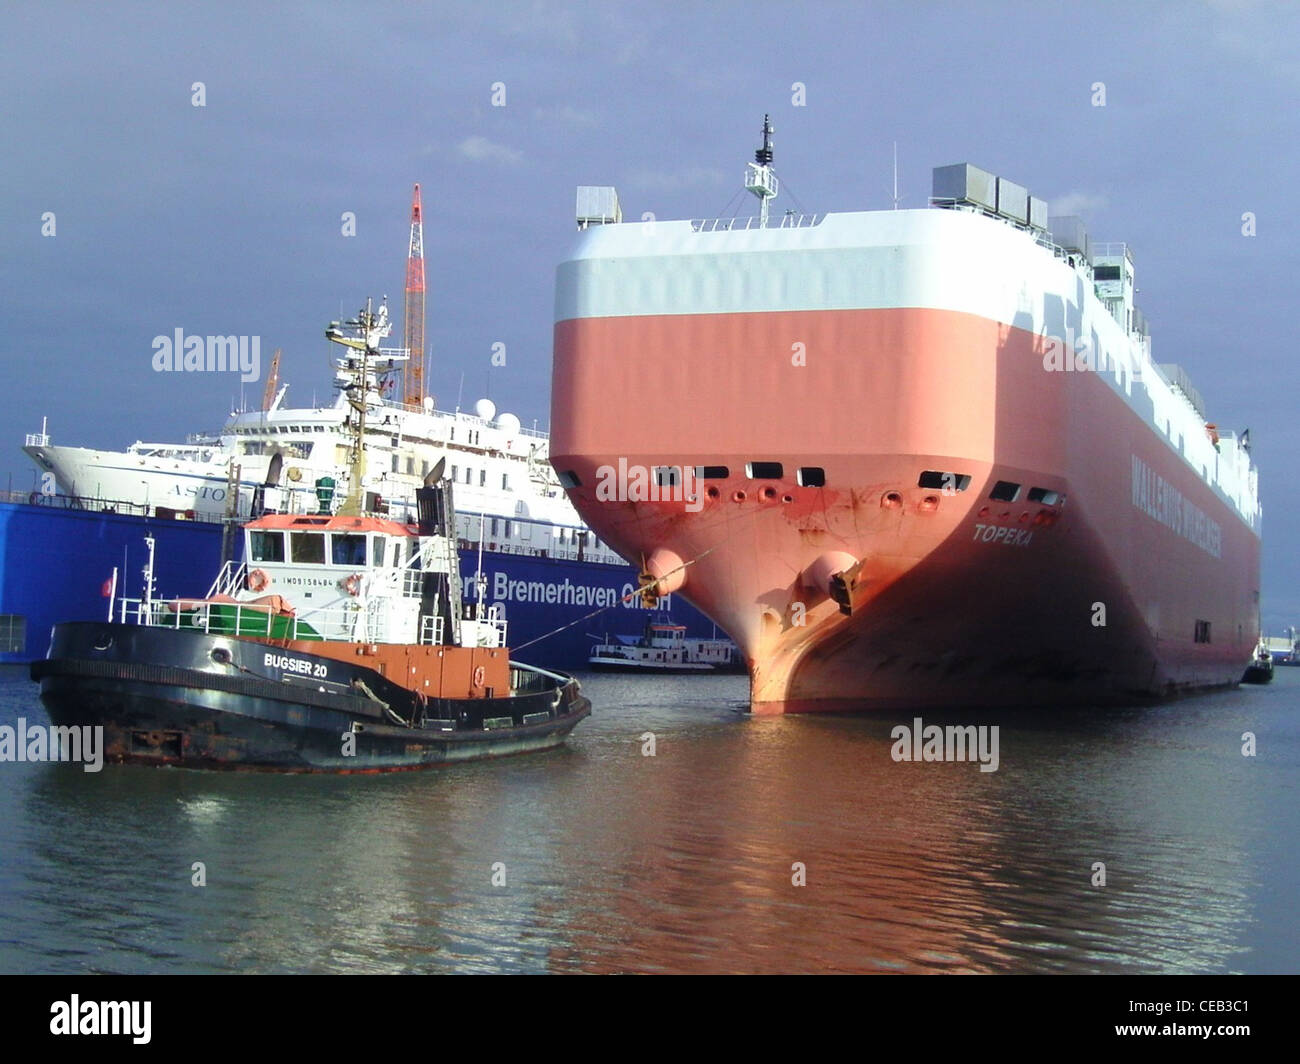 The tugboat Bugsier 20 and the car carrier Topeka manoeuvring in the port of Bremerhaven - Stock Image